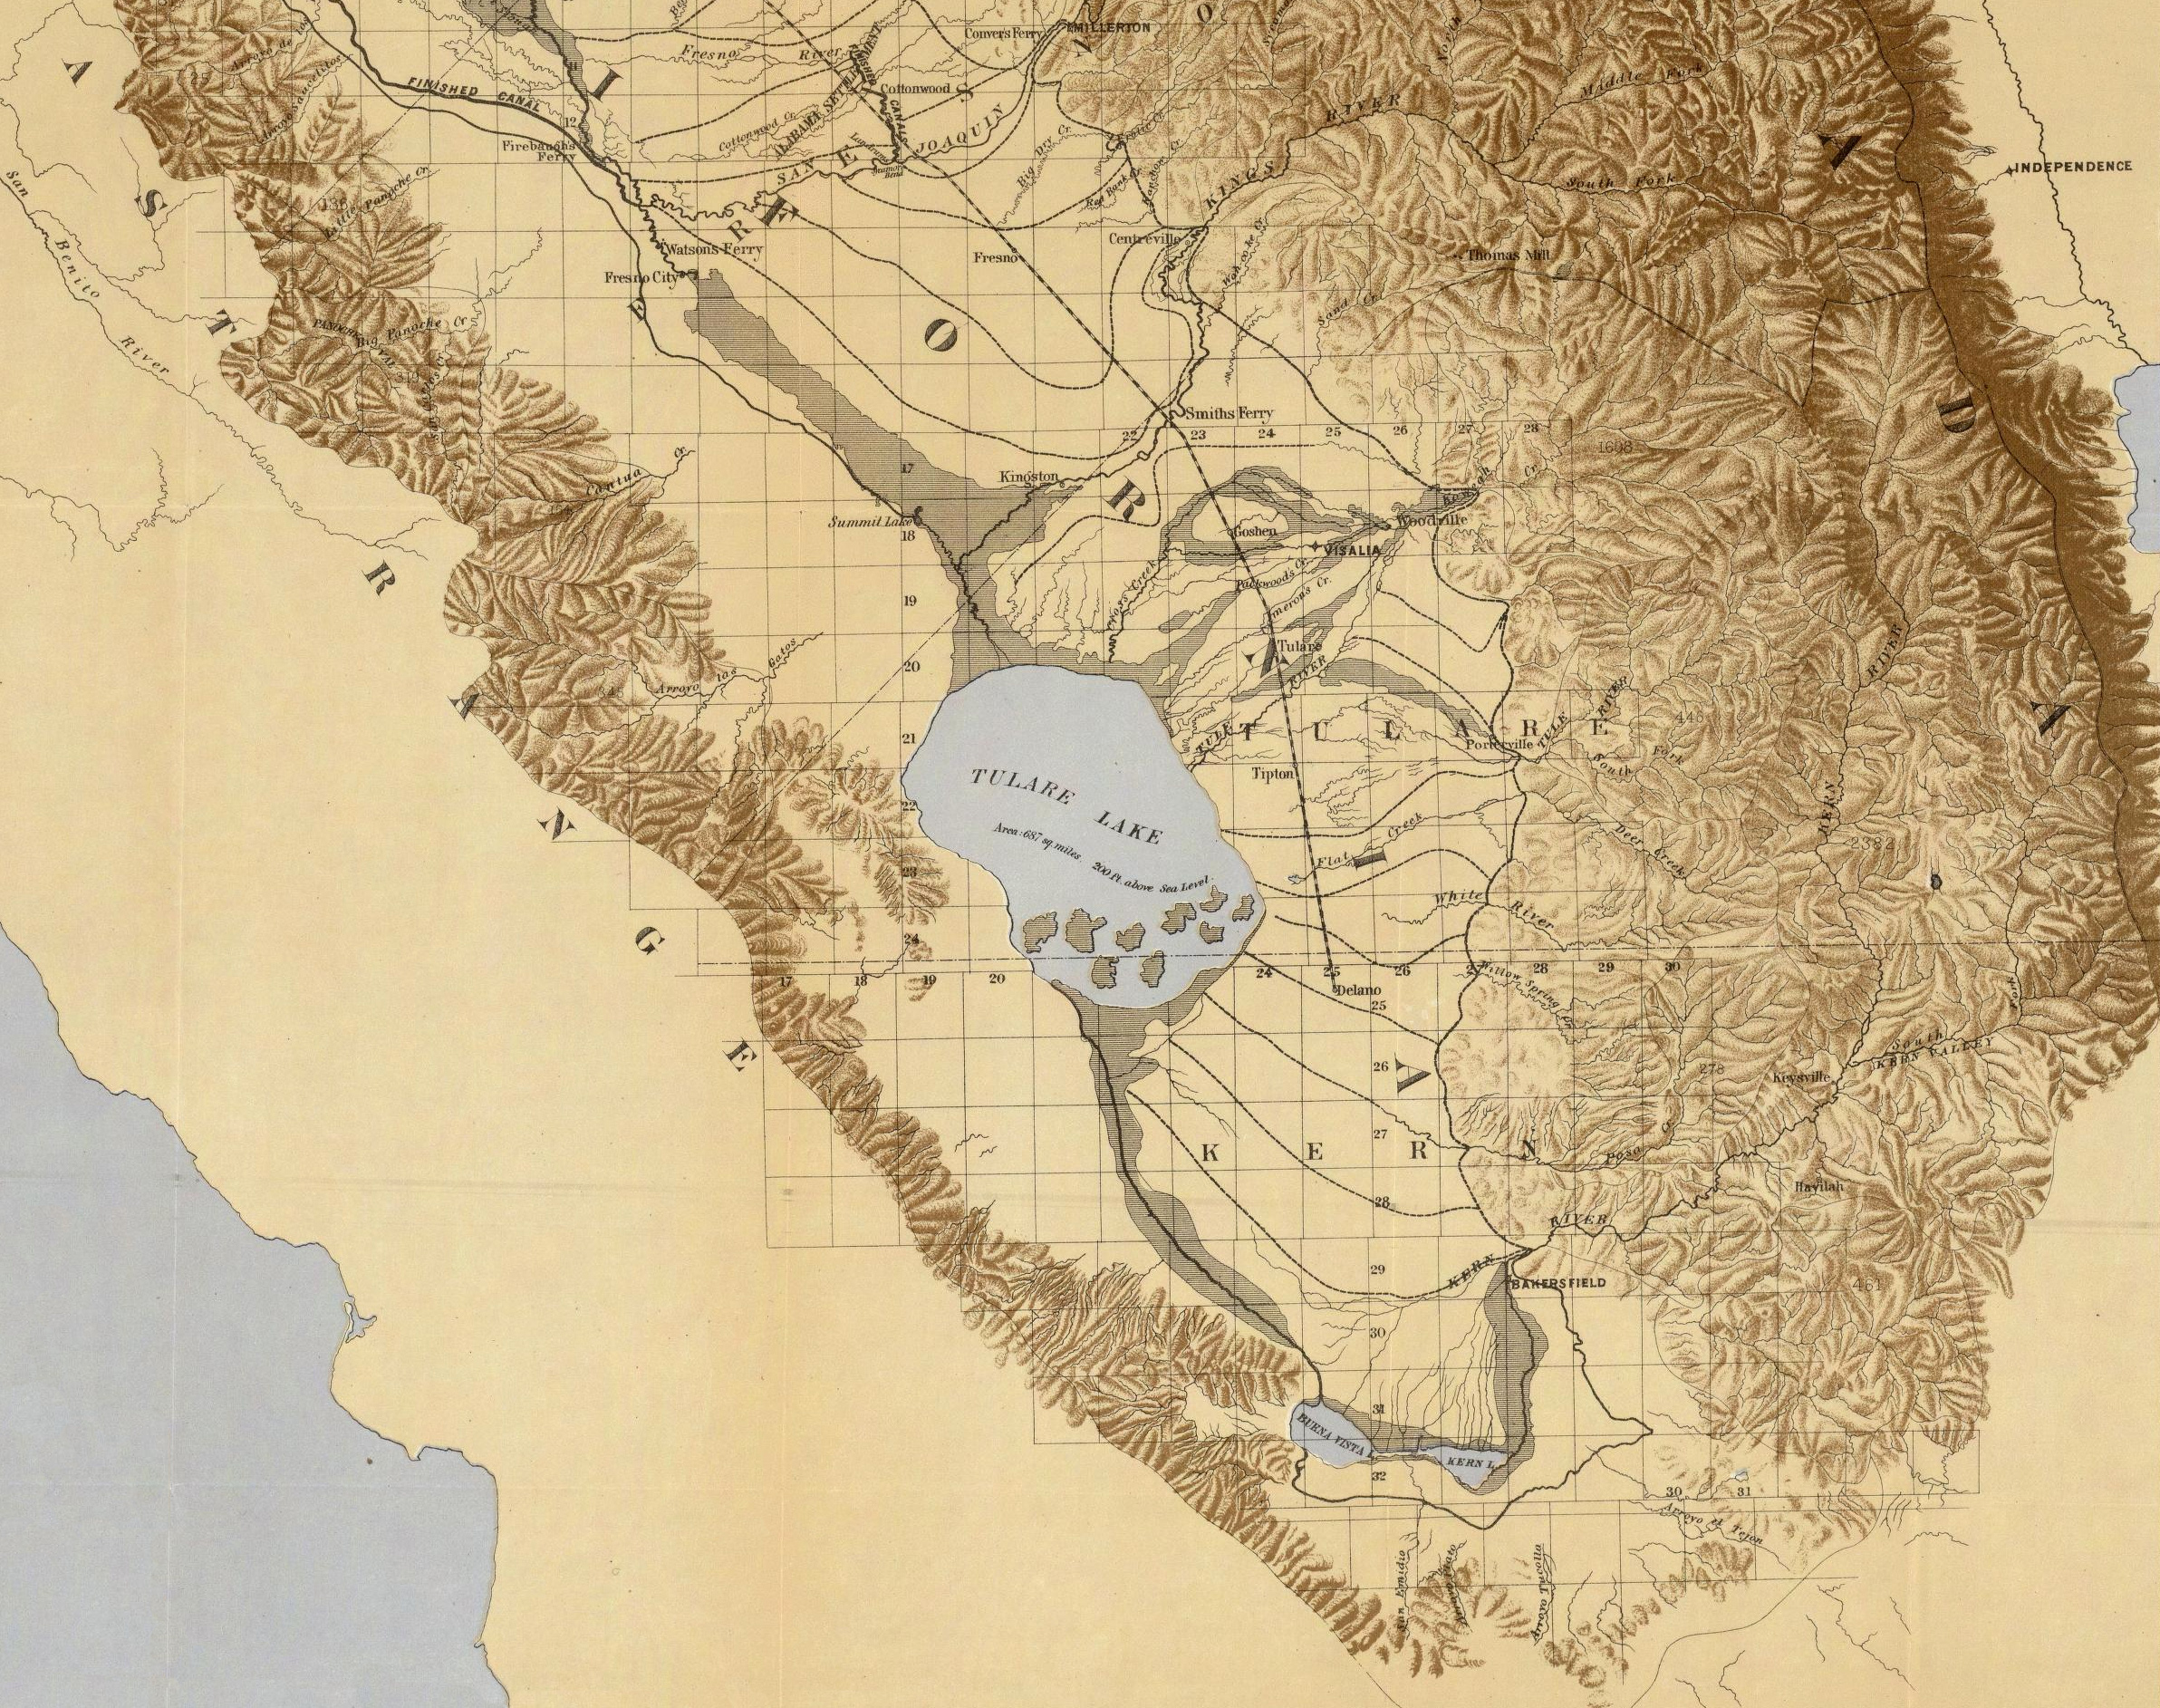 The Tulare Lake:  Von Board of Commissioners on Irrigation, California - David Rumsey Map Collection – Cartography Associates, Gemeinfrei,